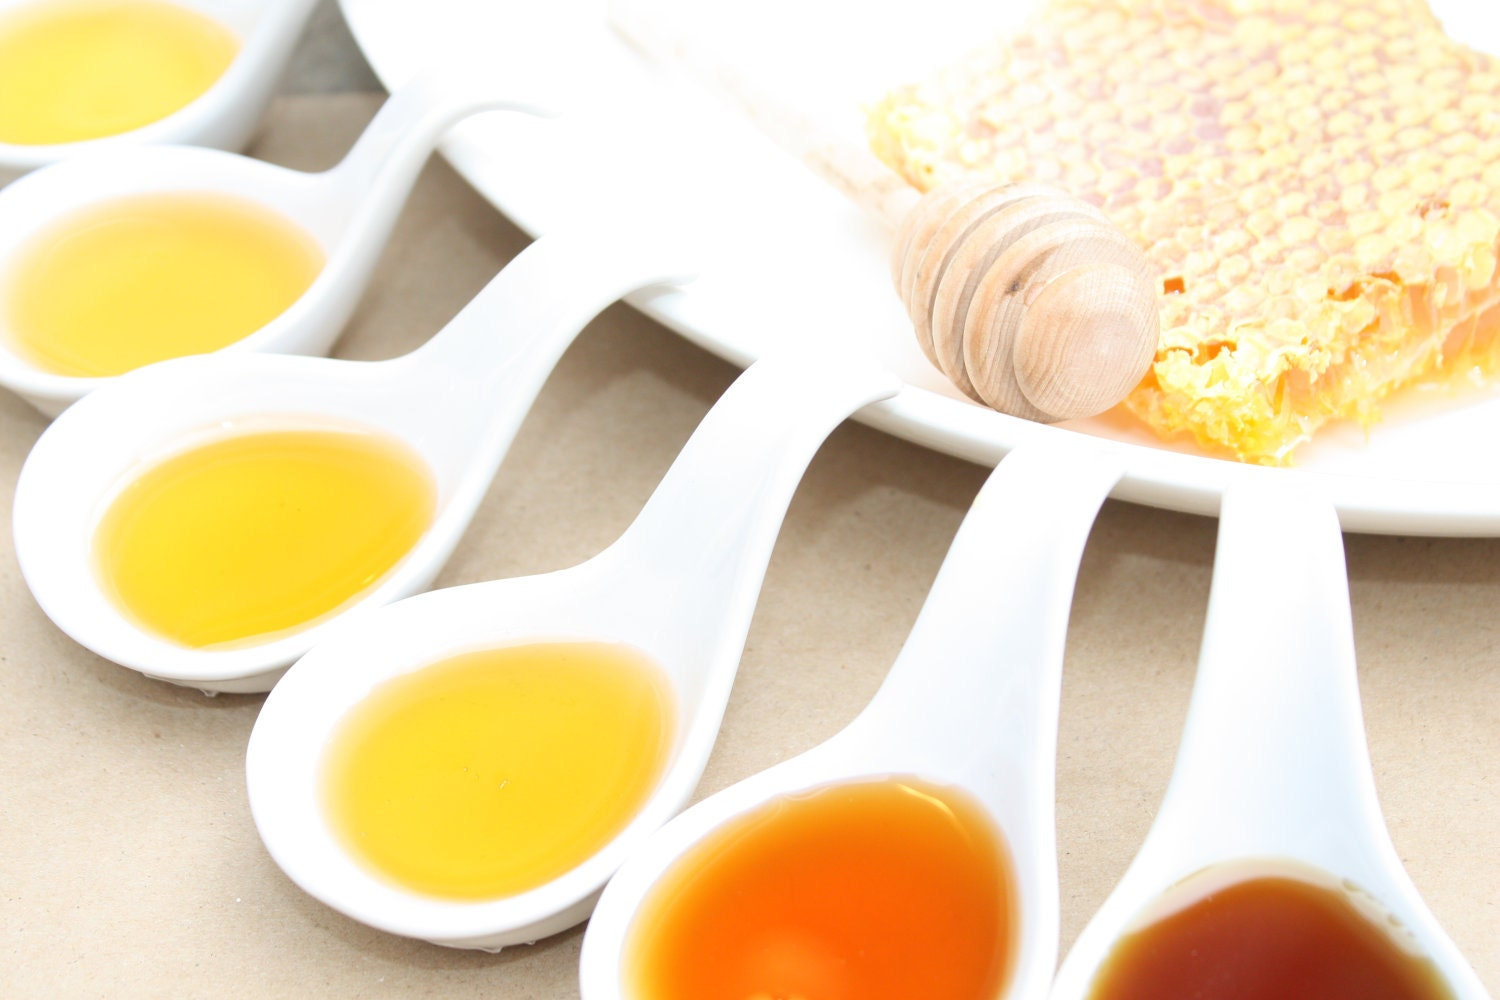 A Honey Tasting  --  One sampler of  6 Varieties of Honey's from the Hive Ohio Proud